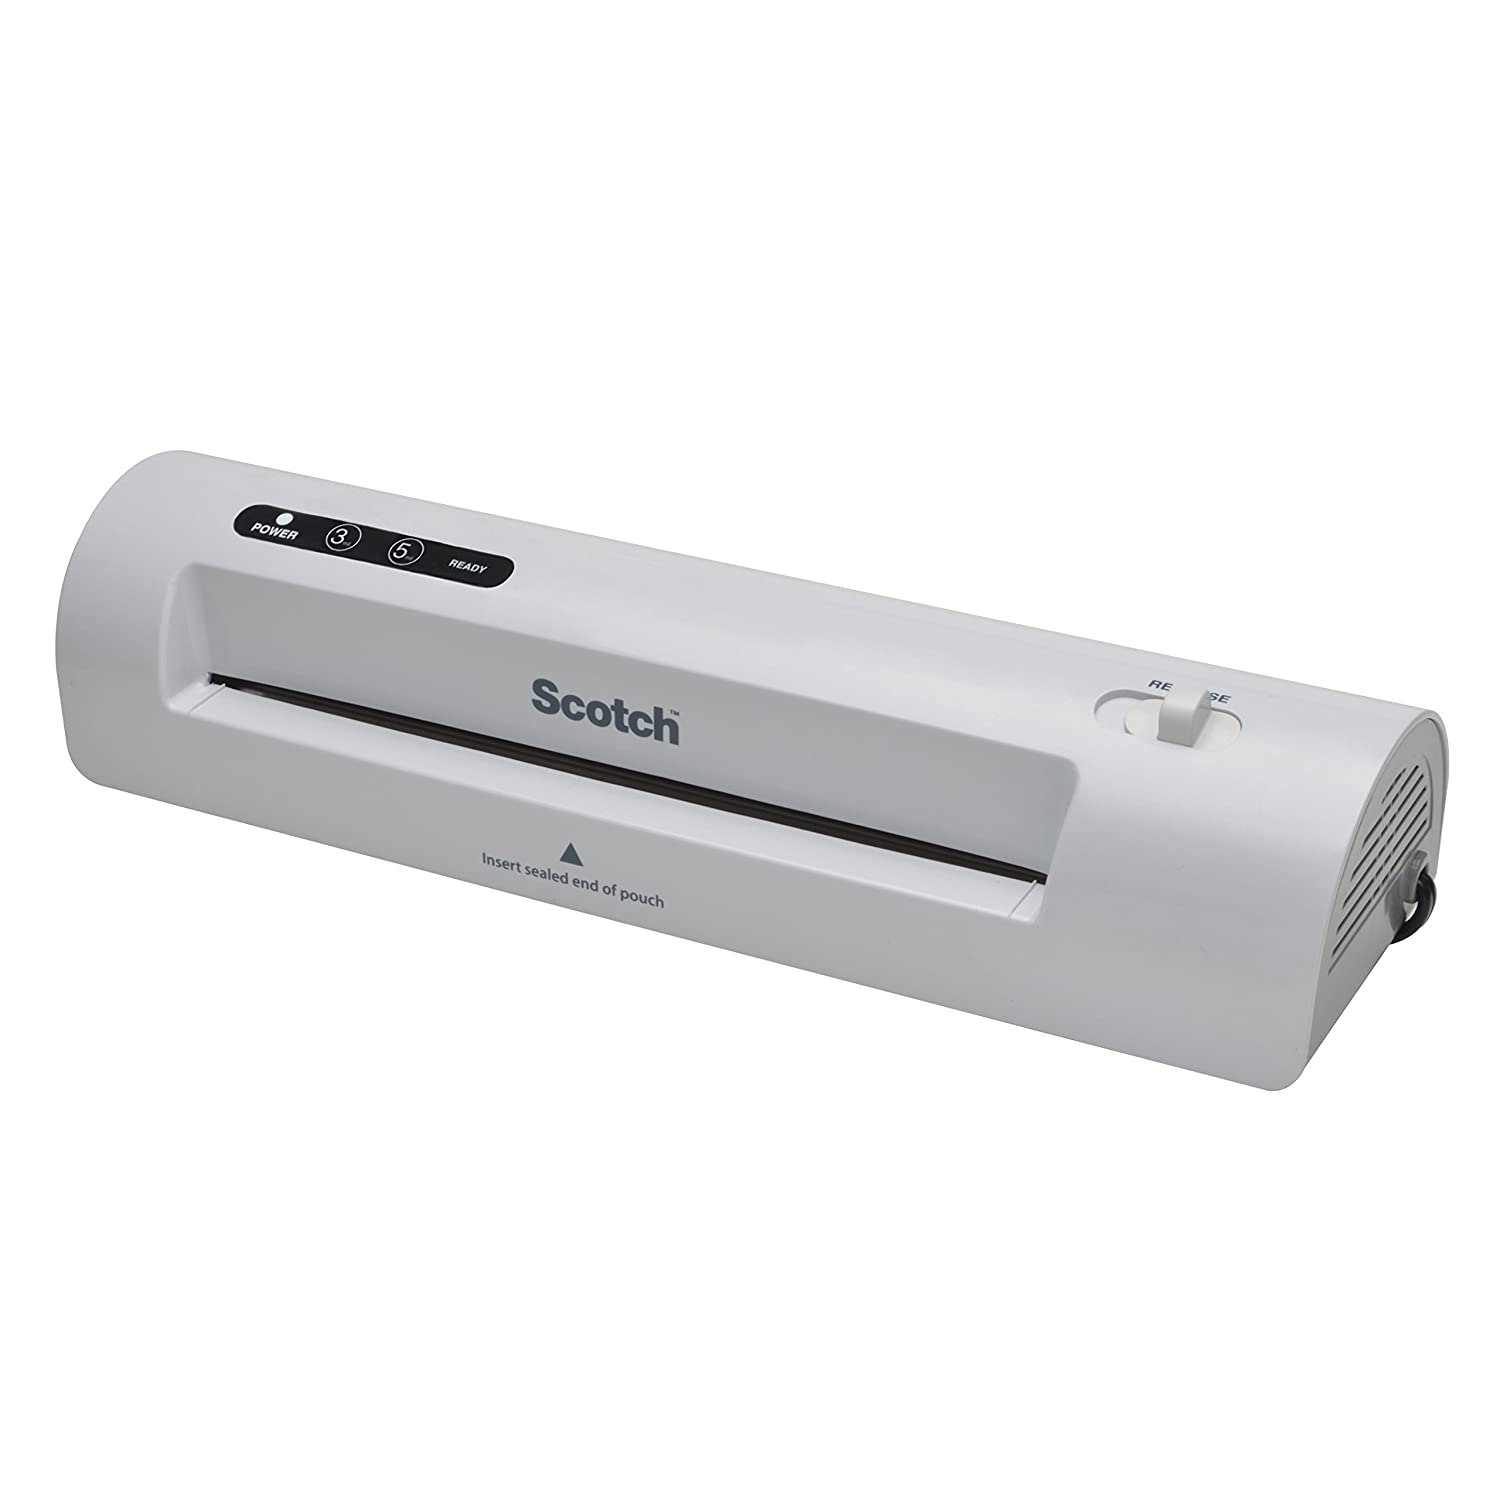 Scotch Thermal Laminator Combo Pack, Includes 20 Laminating Pouches, 9 Inches x 11.4 Inches (TL901SC) 3M Office Products